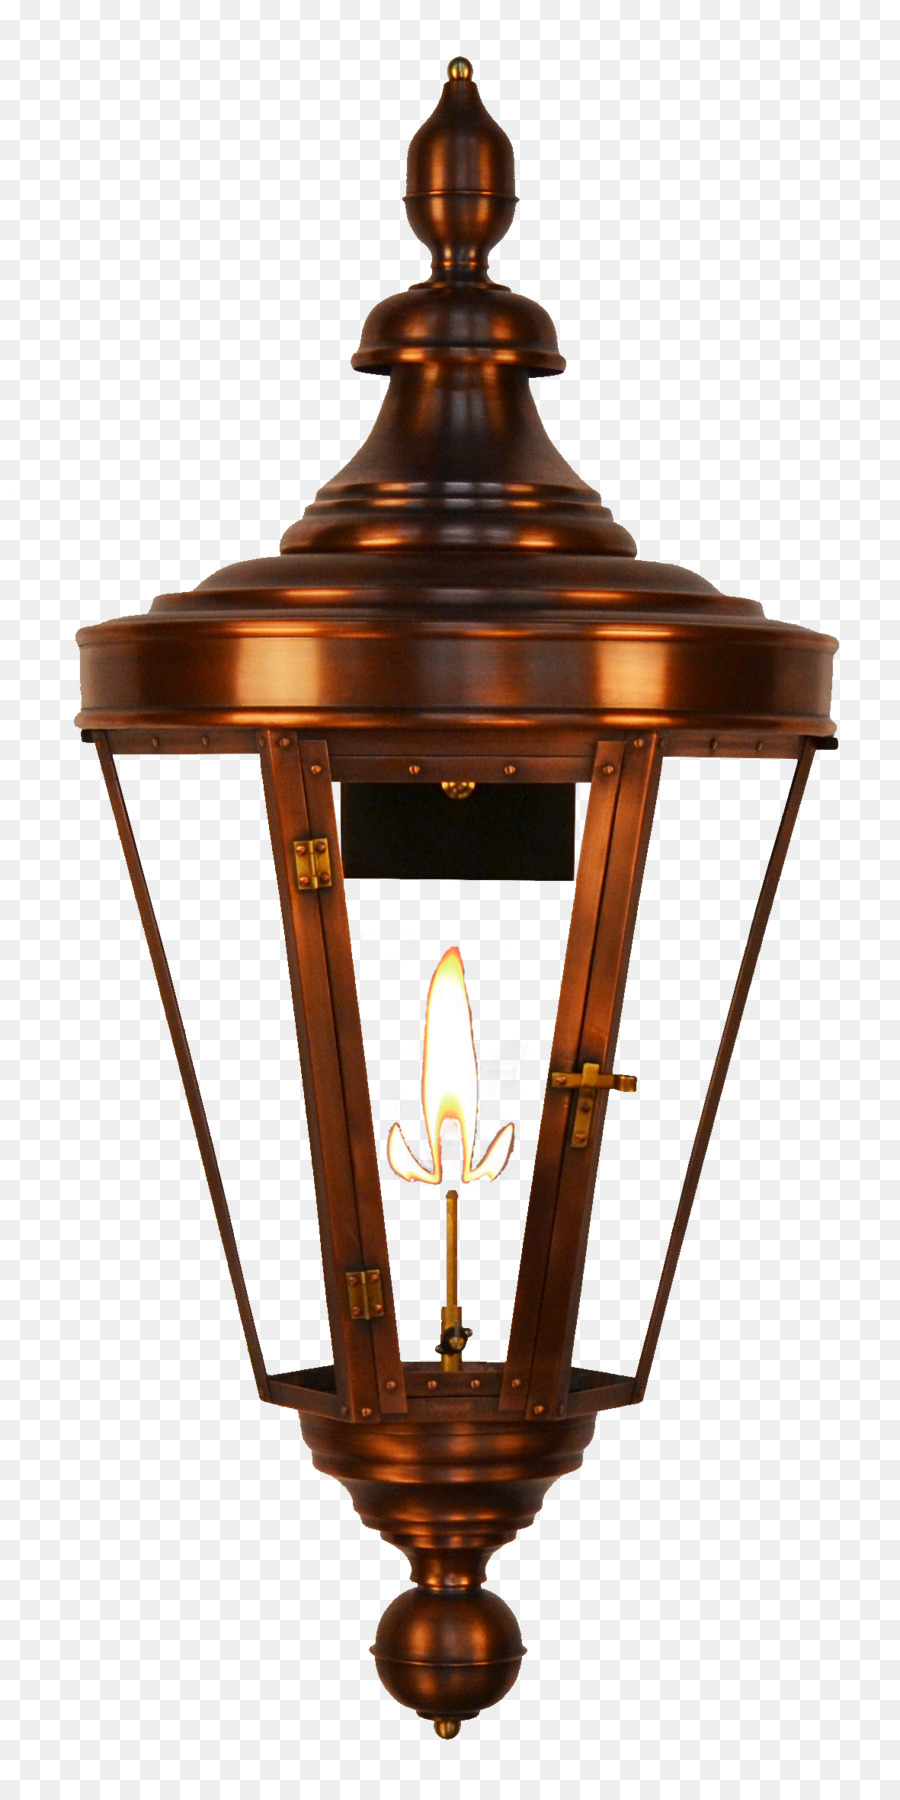 Royal Street New Orleans Gas Lighting Lantern